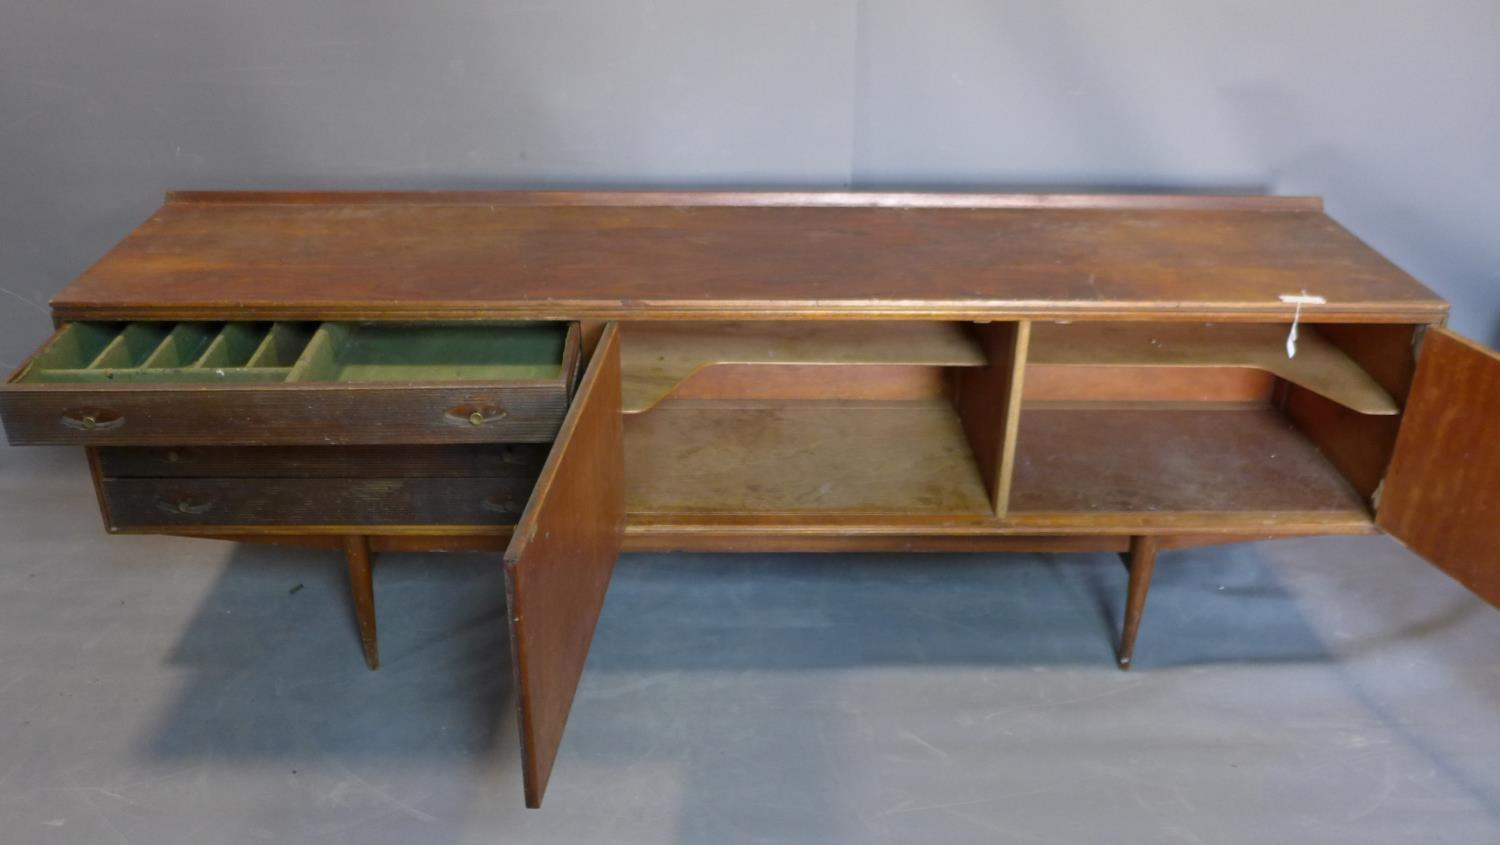 Lot 25 - A mid century teak sideboard designed by Robert Heritage (b.1927) for Archie Shine Ltd, c.1958, same